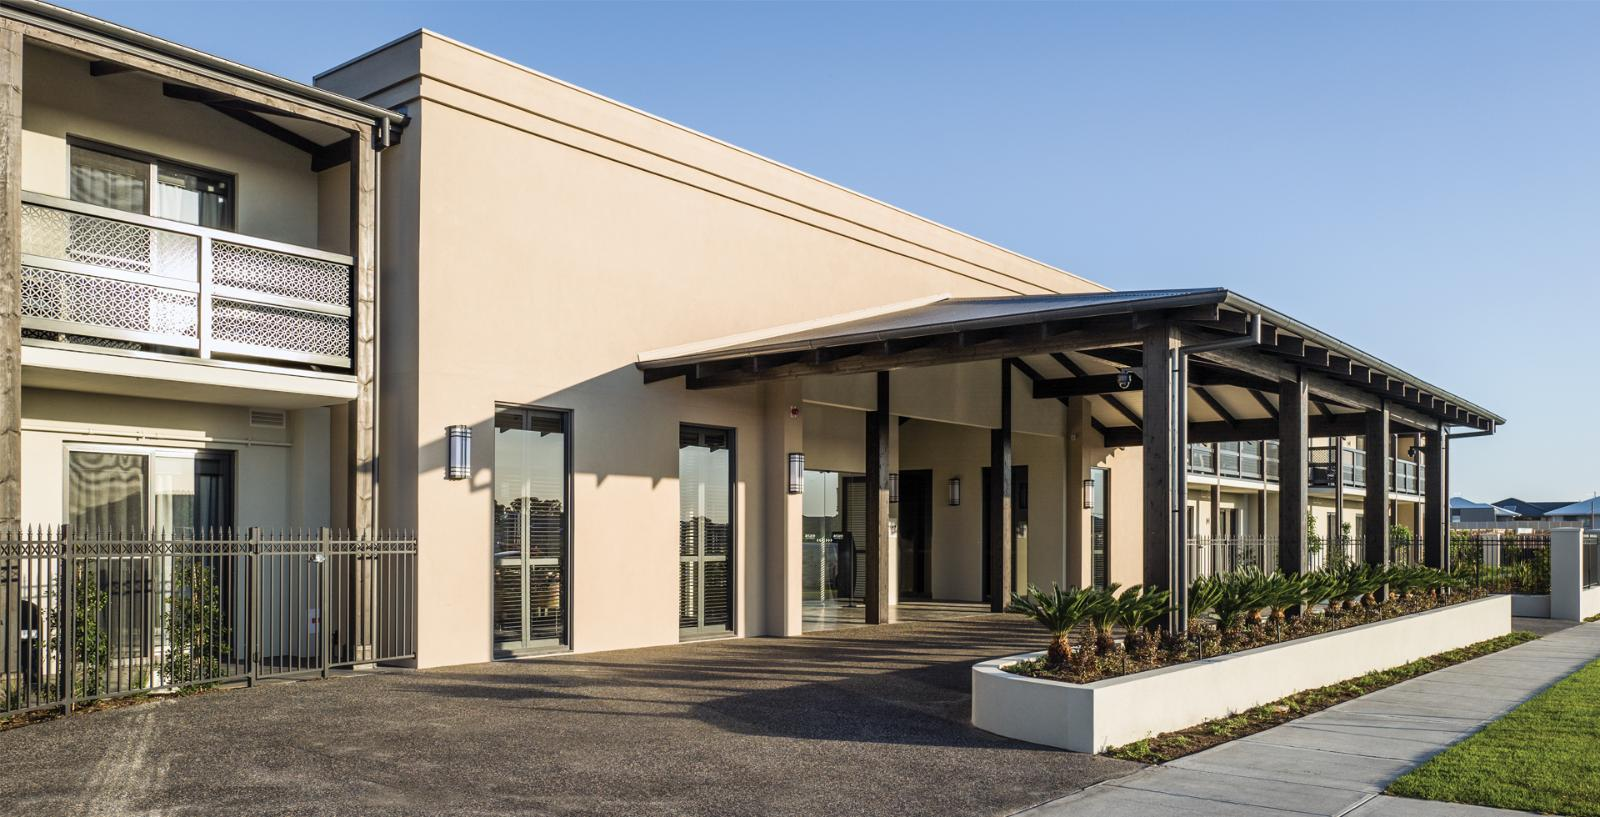 Arcare aged care keysborough exterior 02